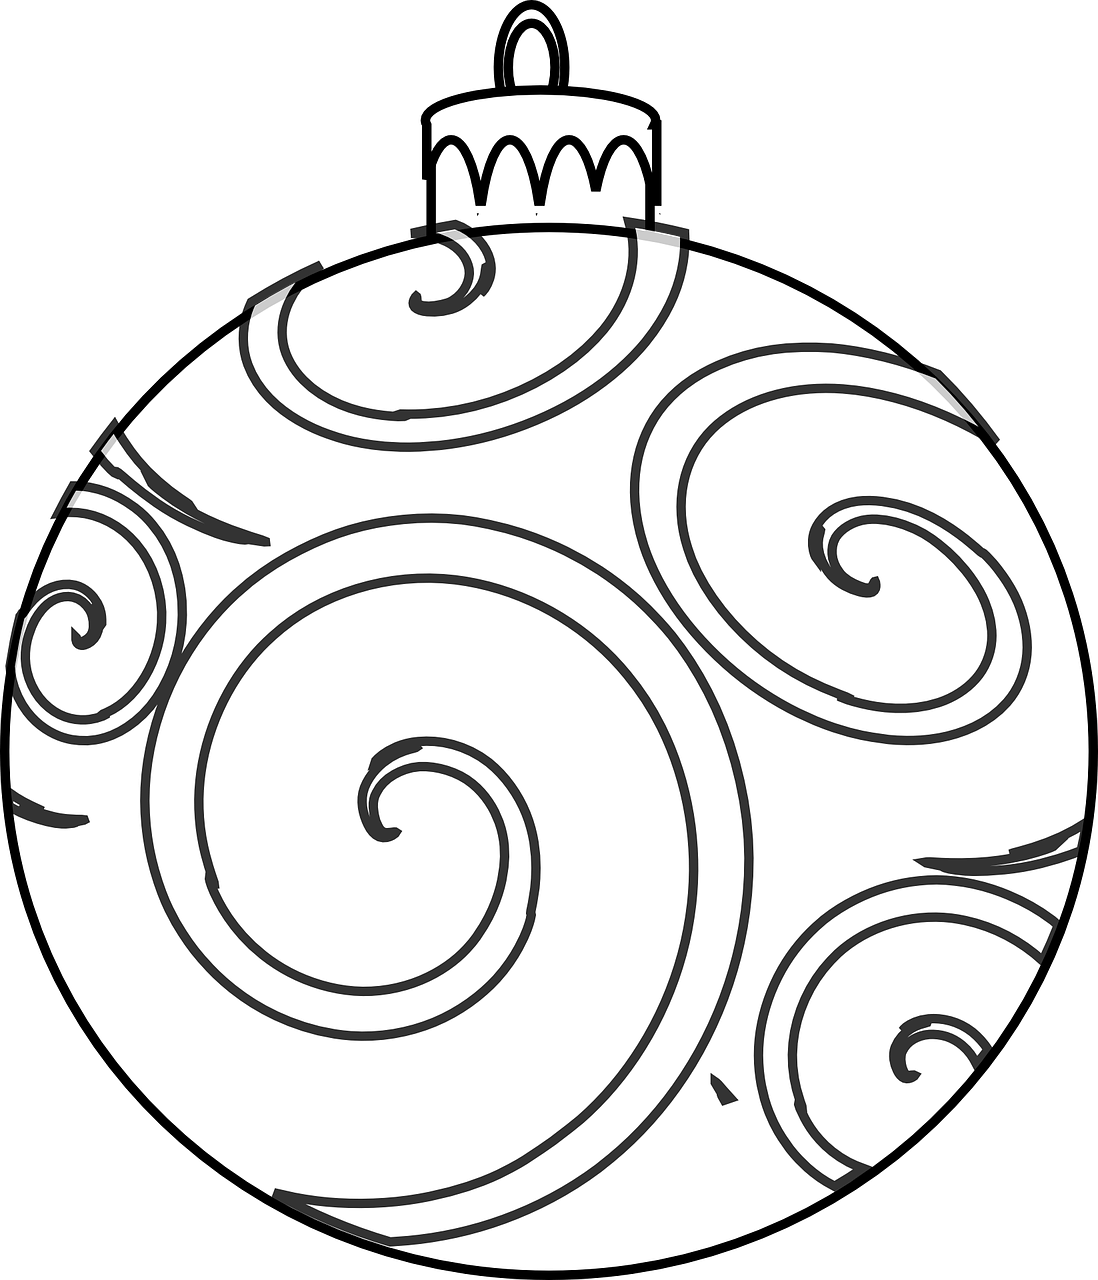 ornaments coloring pages christmas ornament coloring pages wallpapers9 coloring ornaments pages